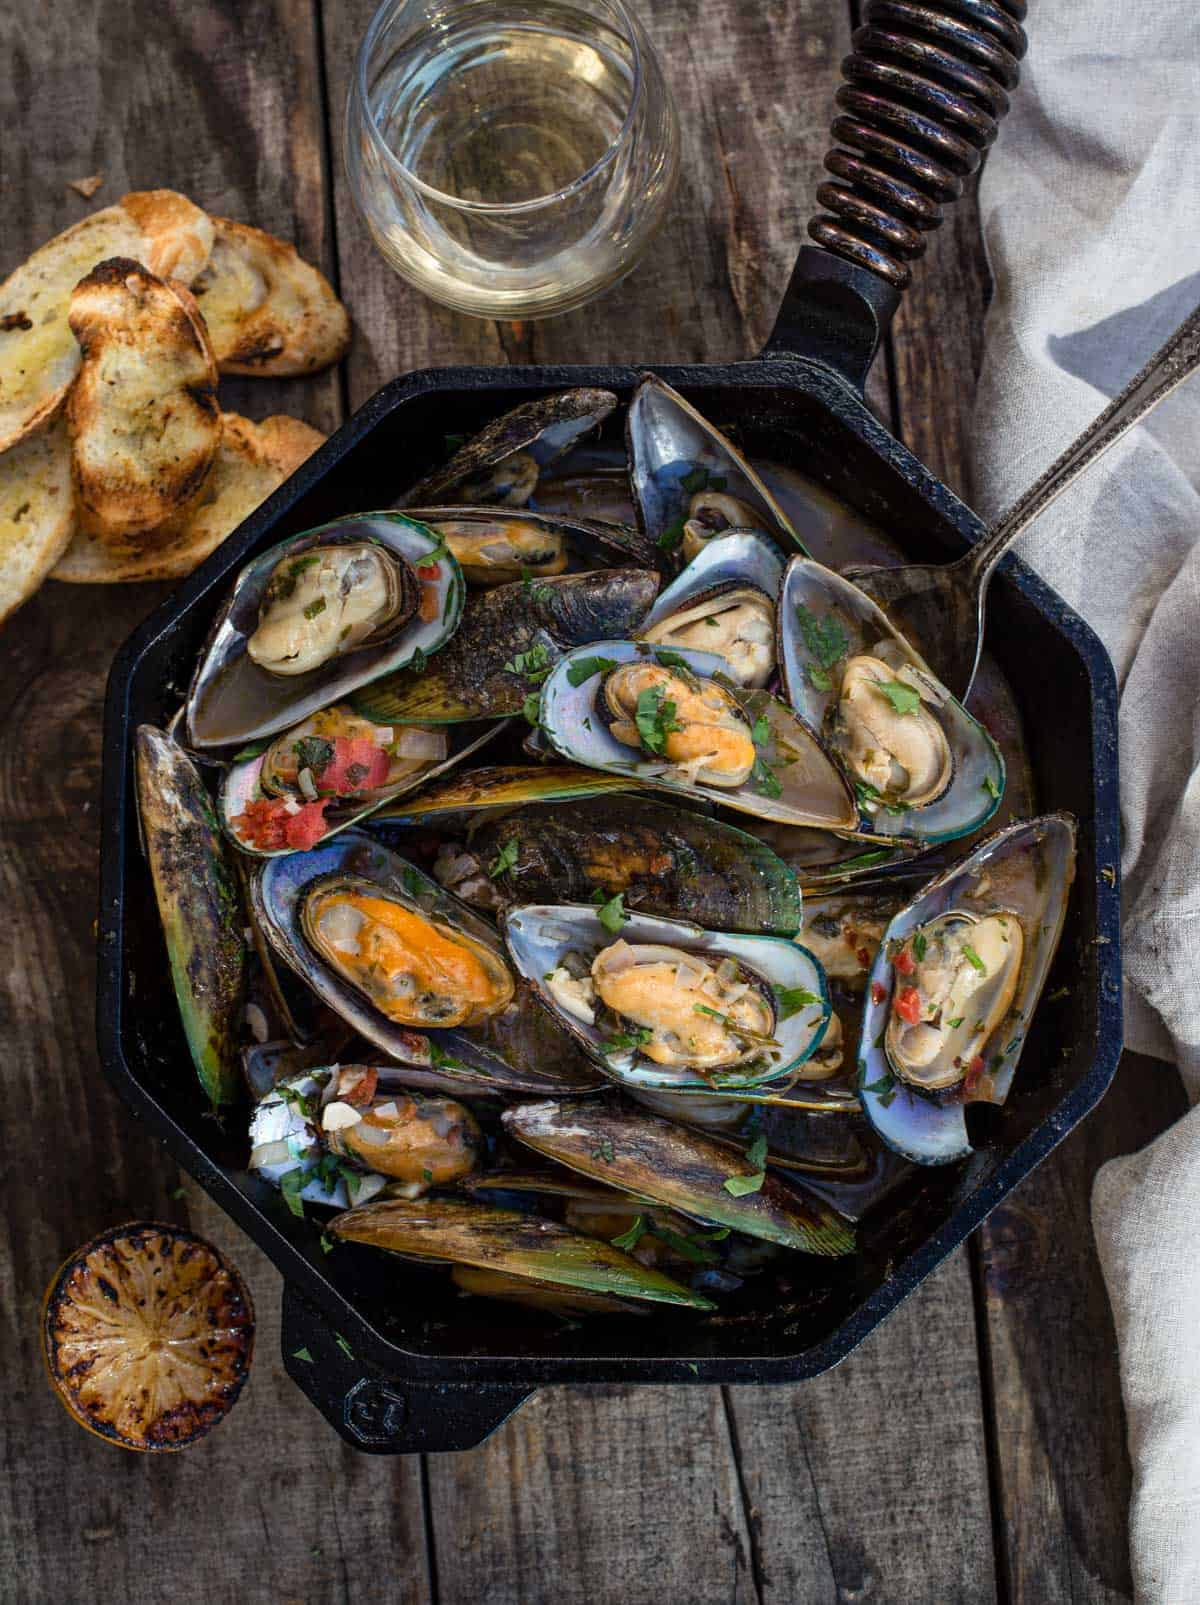 Grilled mussels in a cast iron pan on a wood board with a glass of wine and a grilled lemon halves